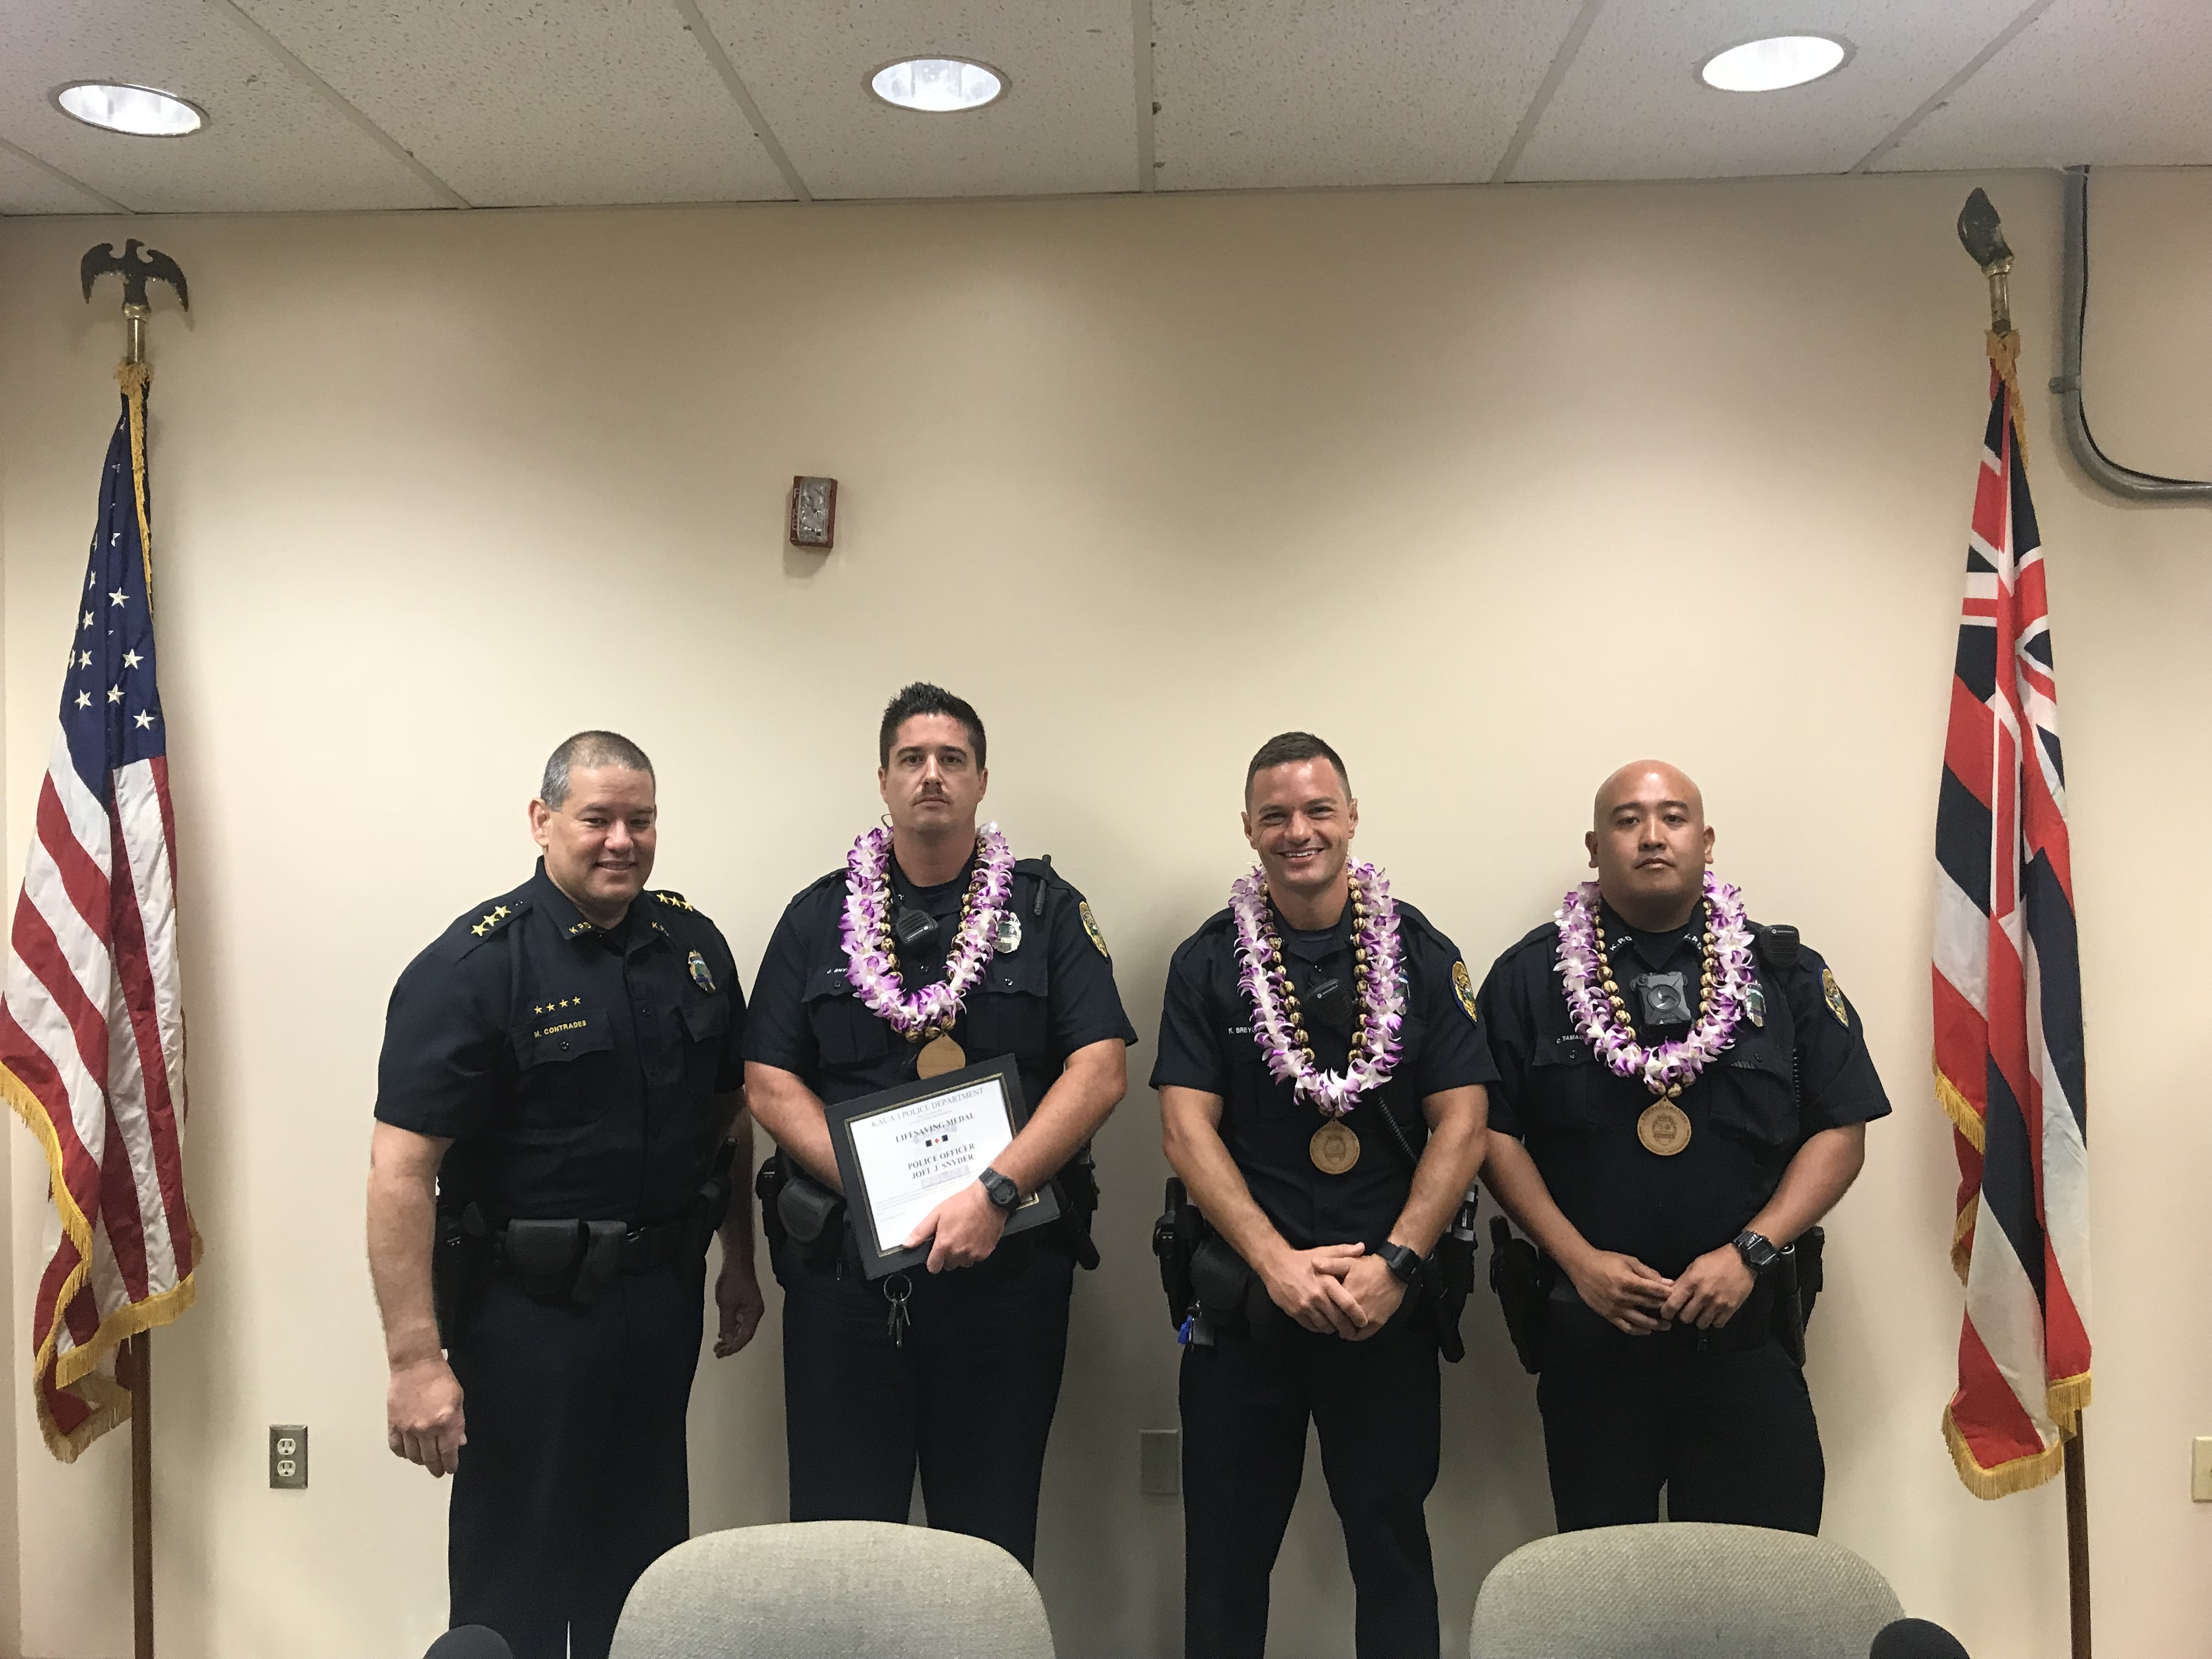 From Left to Right: Kaua'i Police Acting Chief Michael Contrades congratulates Officers of the Month Officer Joel Snyder, Officer Kristopher Breyer, and Officer Creighton Tamagawa at the Police Commission Meeting on Oct. 26.